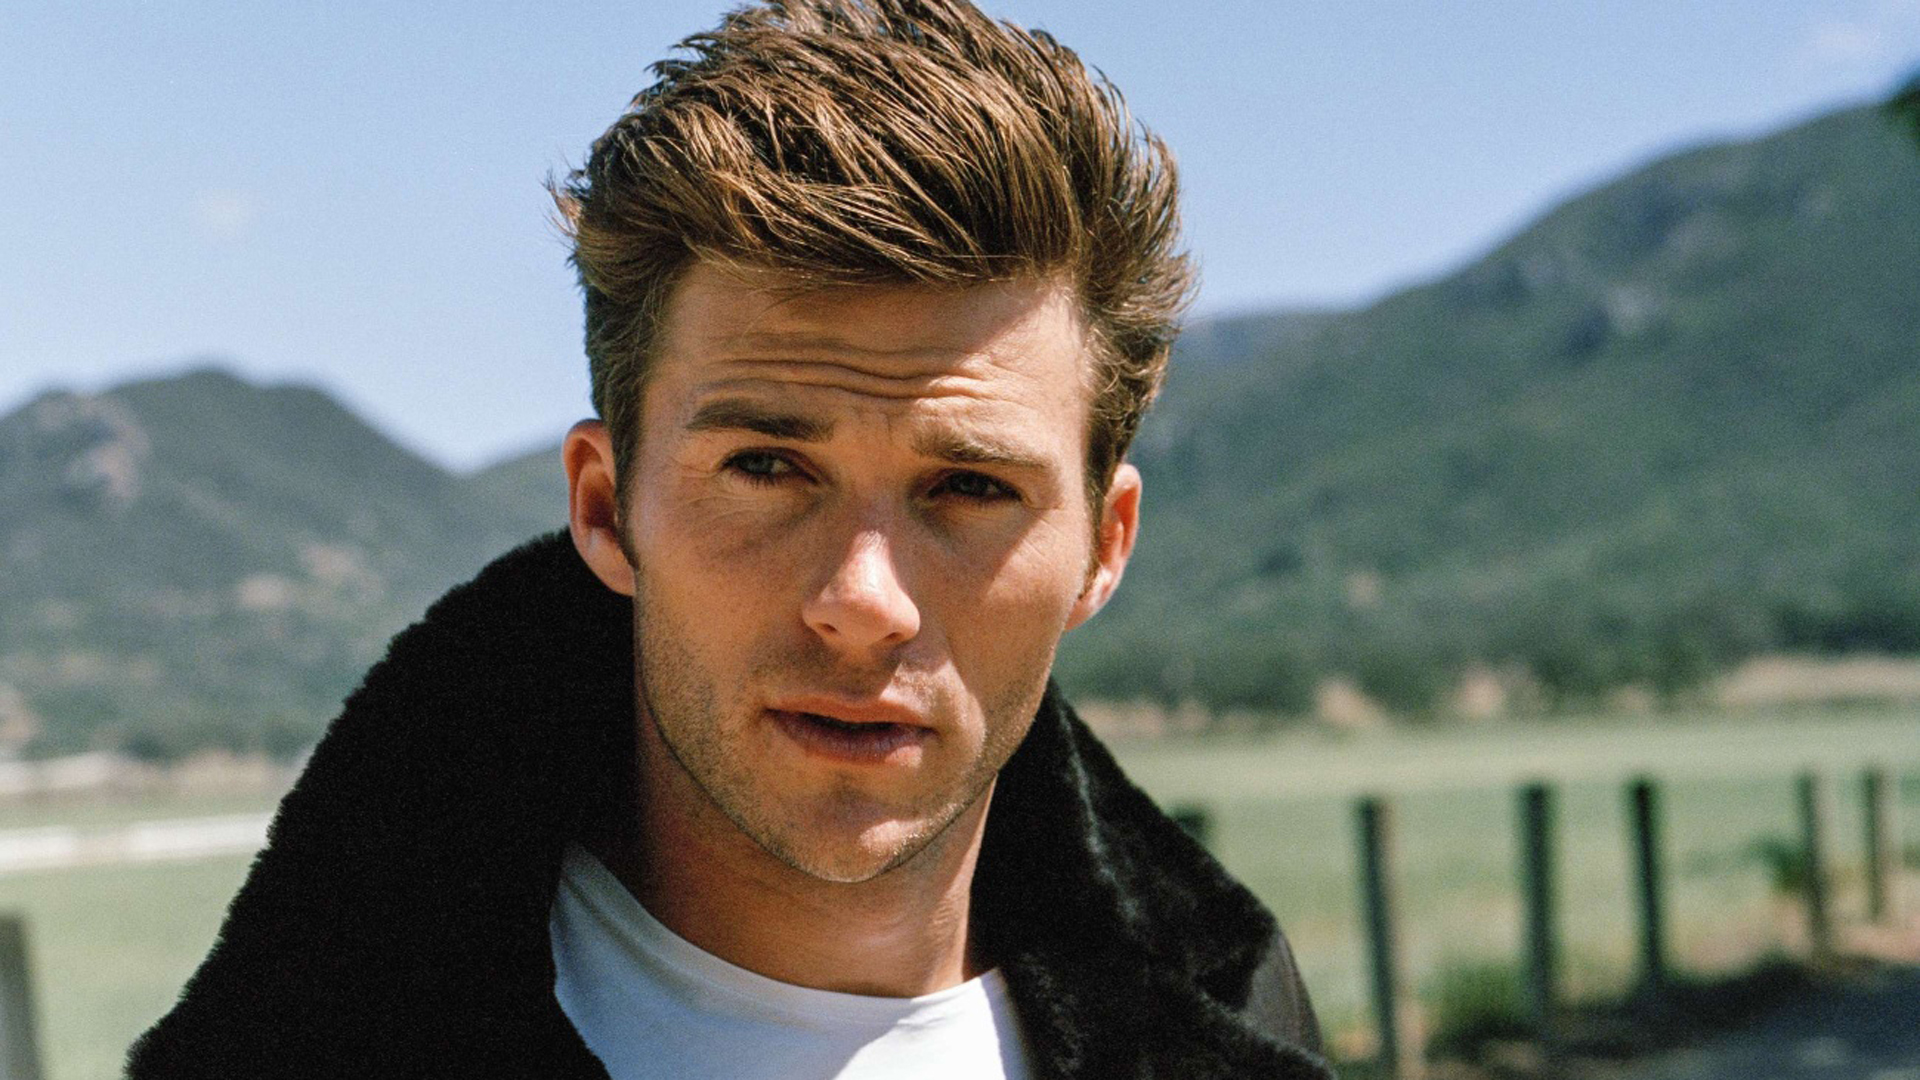 Scott Eastwood Wallpapers High Resolution and Quality Download